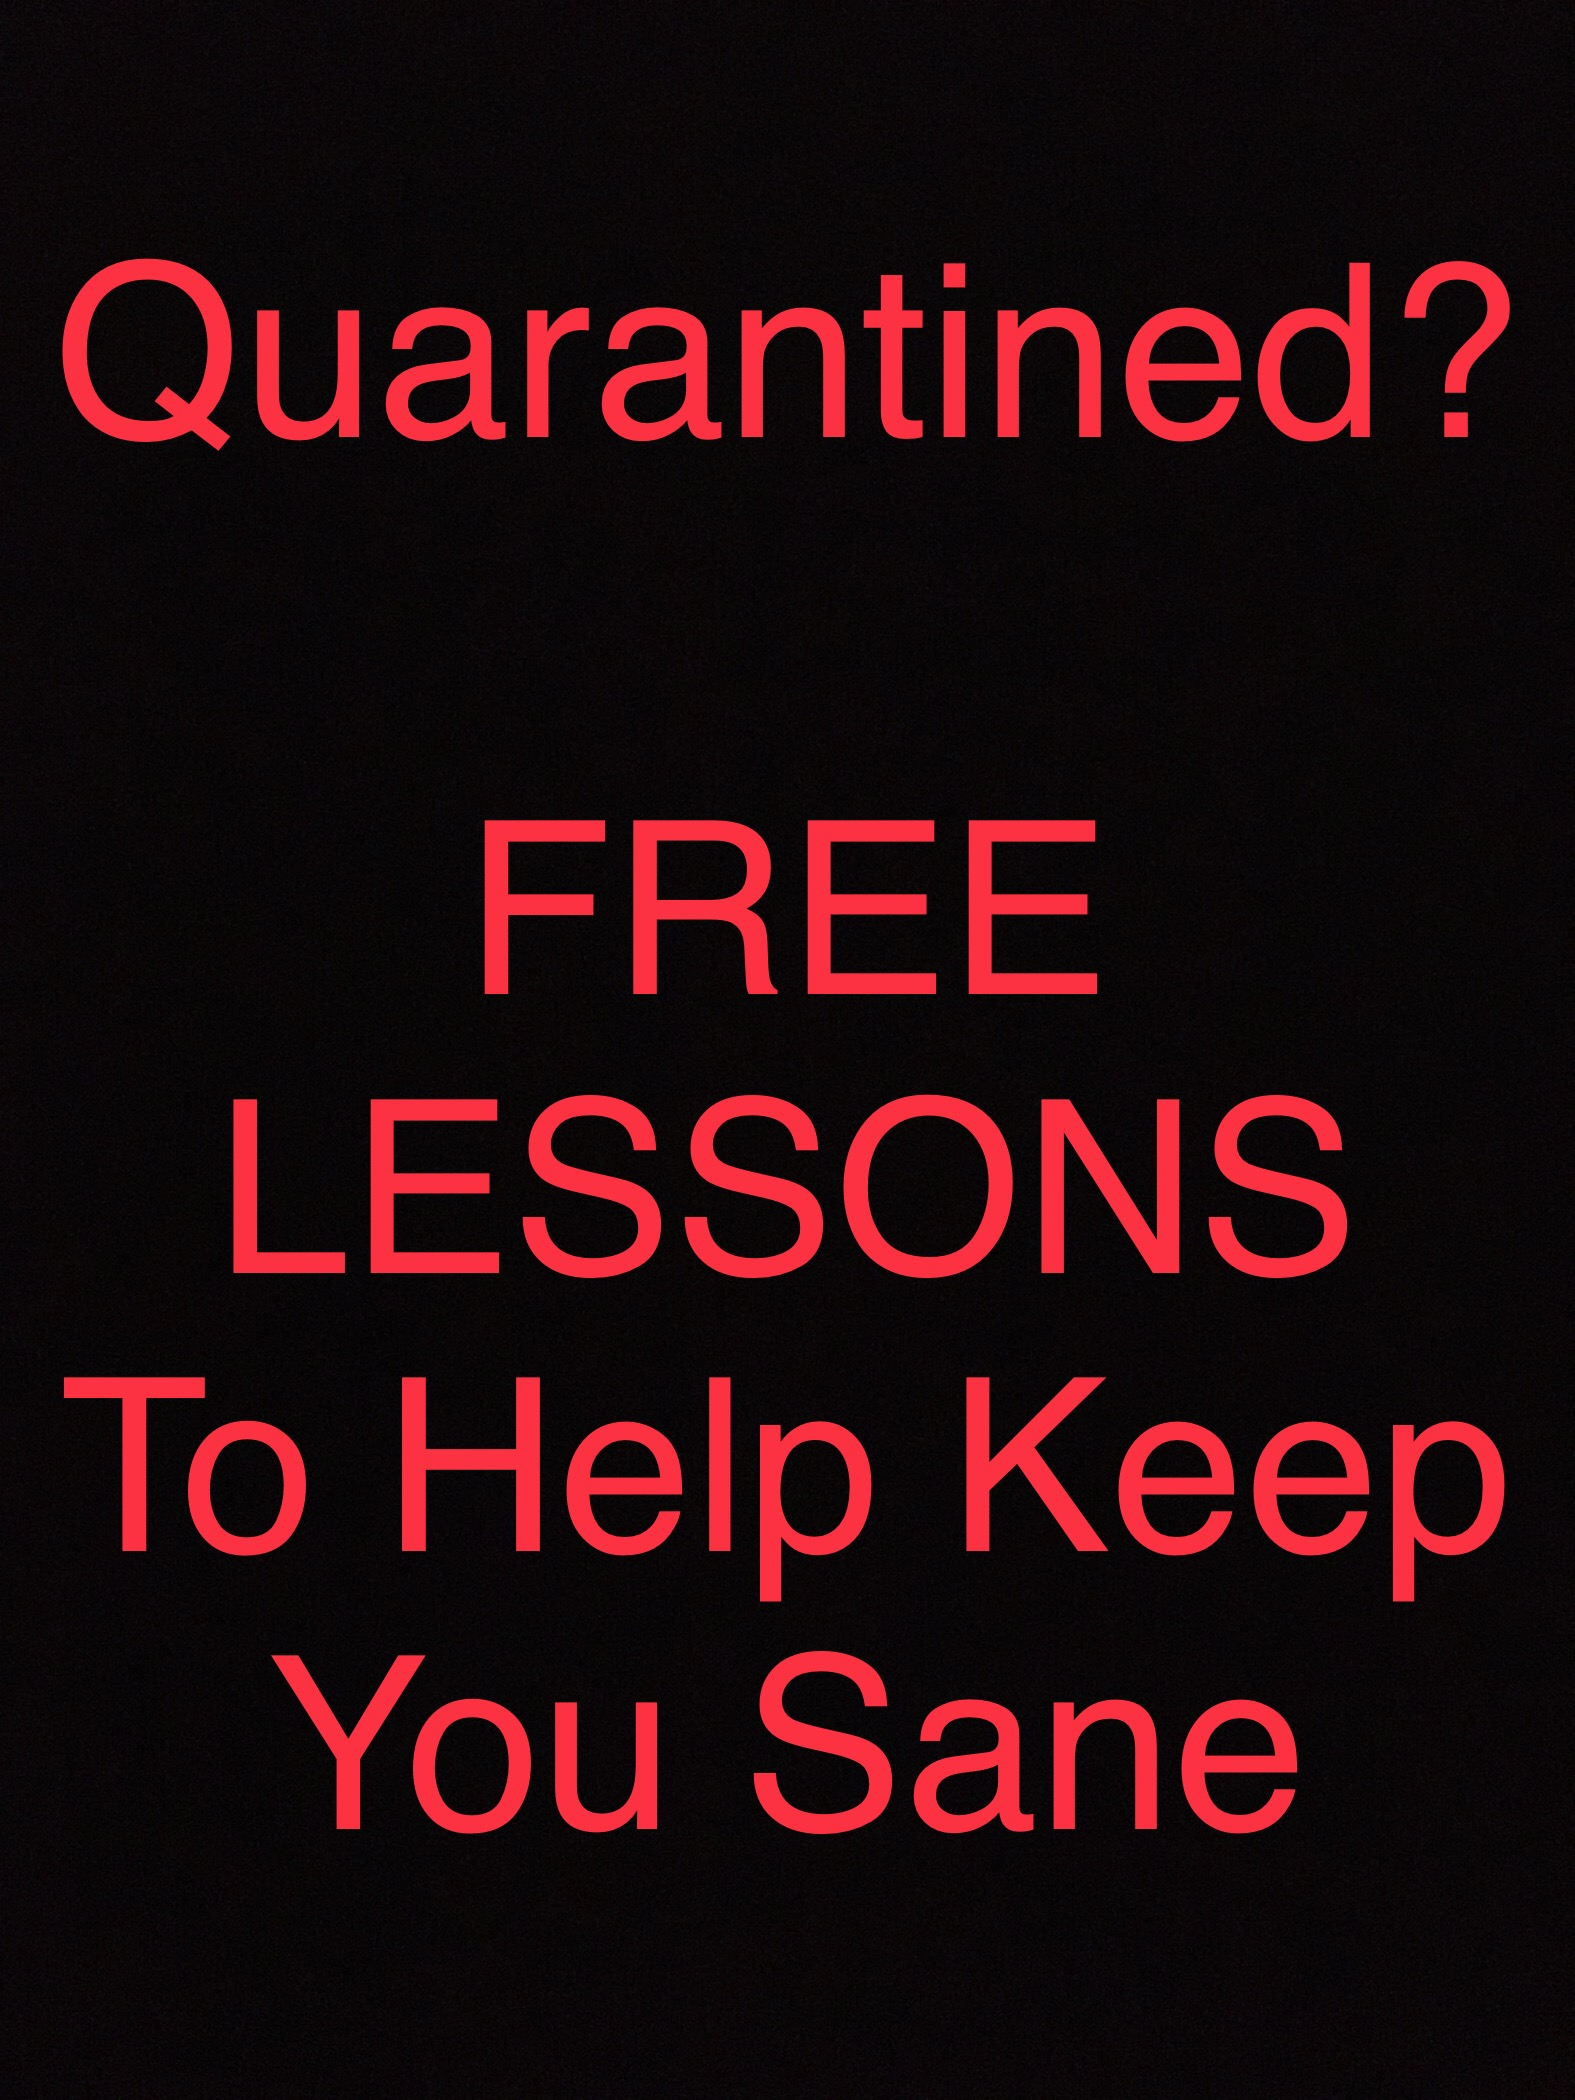 Quarantined? Free Lessons to help keep you sane.